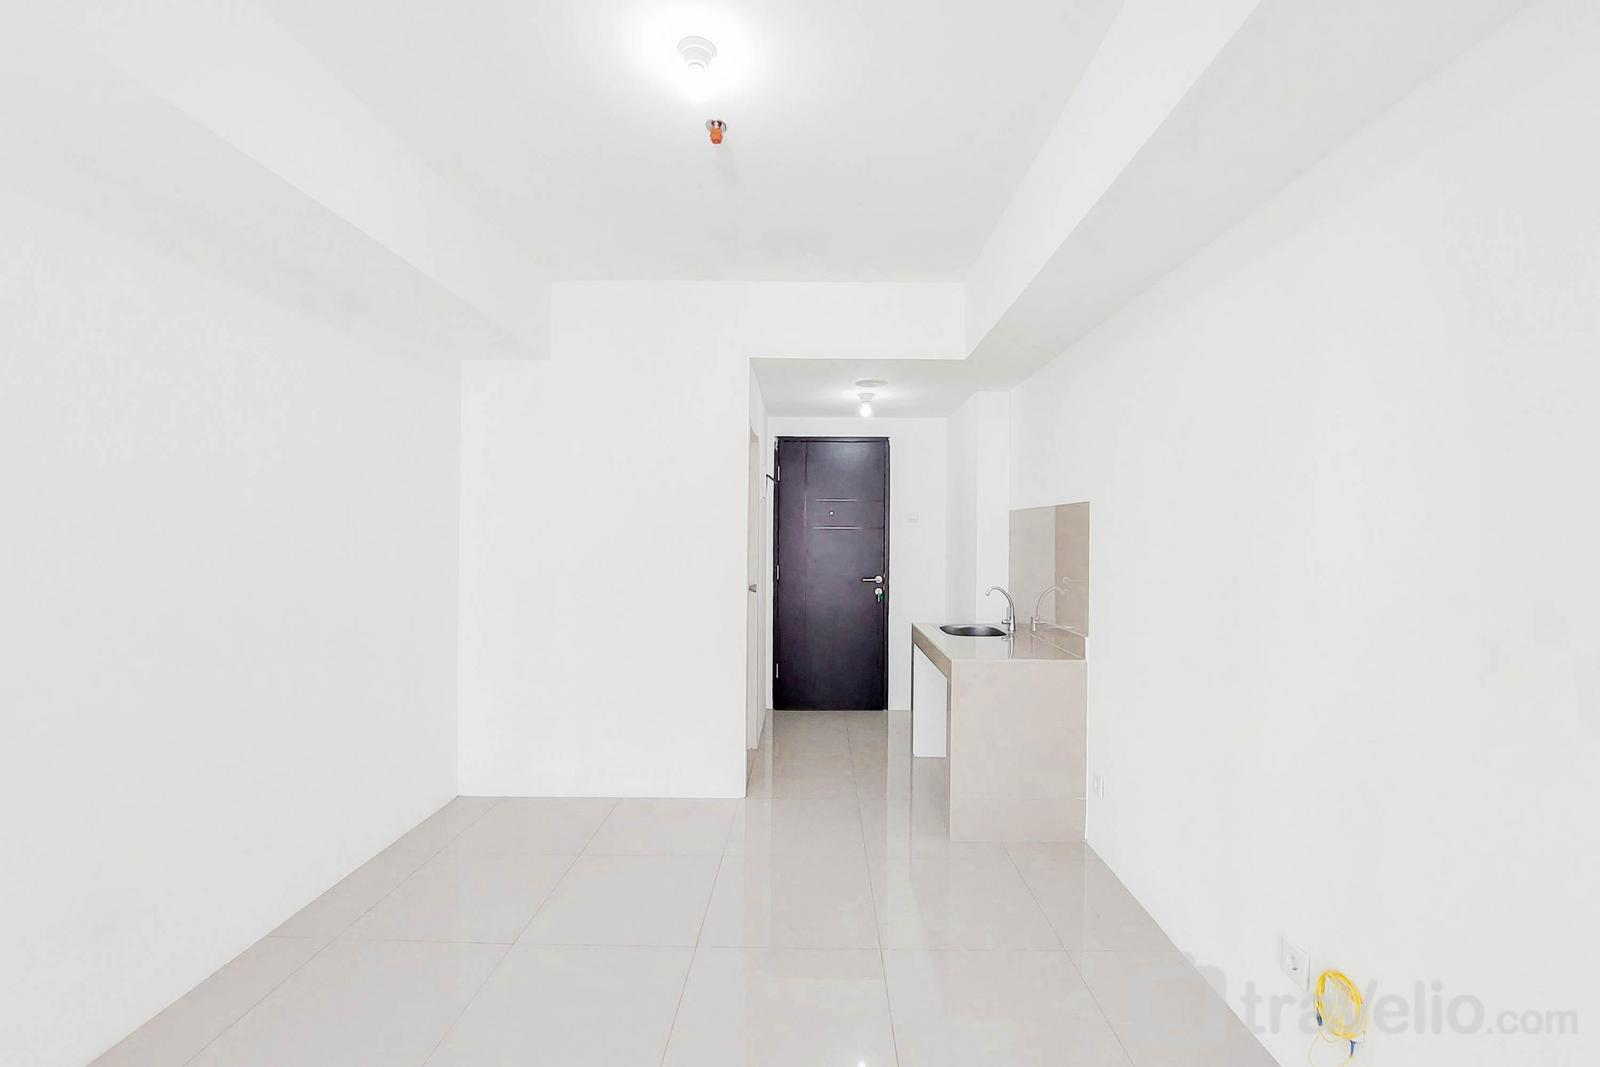 Apartemen Baileys - Unfurnished Nice and Spacious Studio Room at Baileys Apartment By Travelio